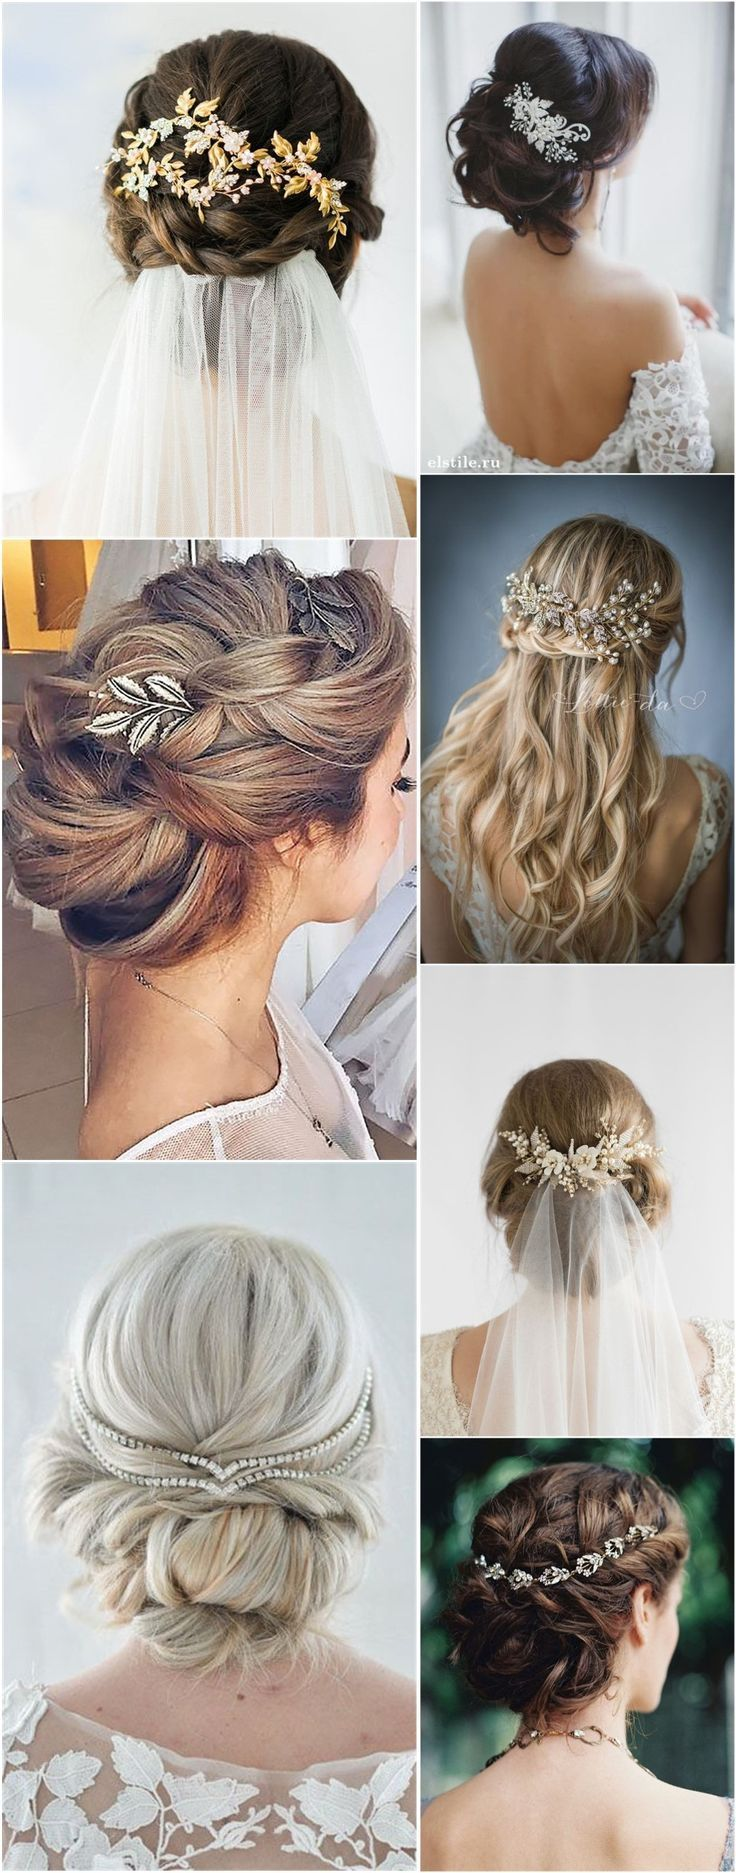 Wedding Hairstyles » Hair Comes the Bride – 20 Bridal Hair Accessories Get Style Advice for Any Budget ❤️ See more: http://www.weddinginclude.com/2017/03/hair-comes-the-bride-bridal-hair-accessories-get-style-advice-for-any-